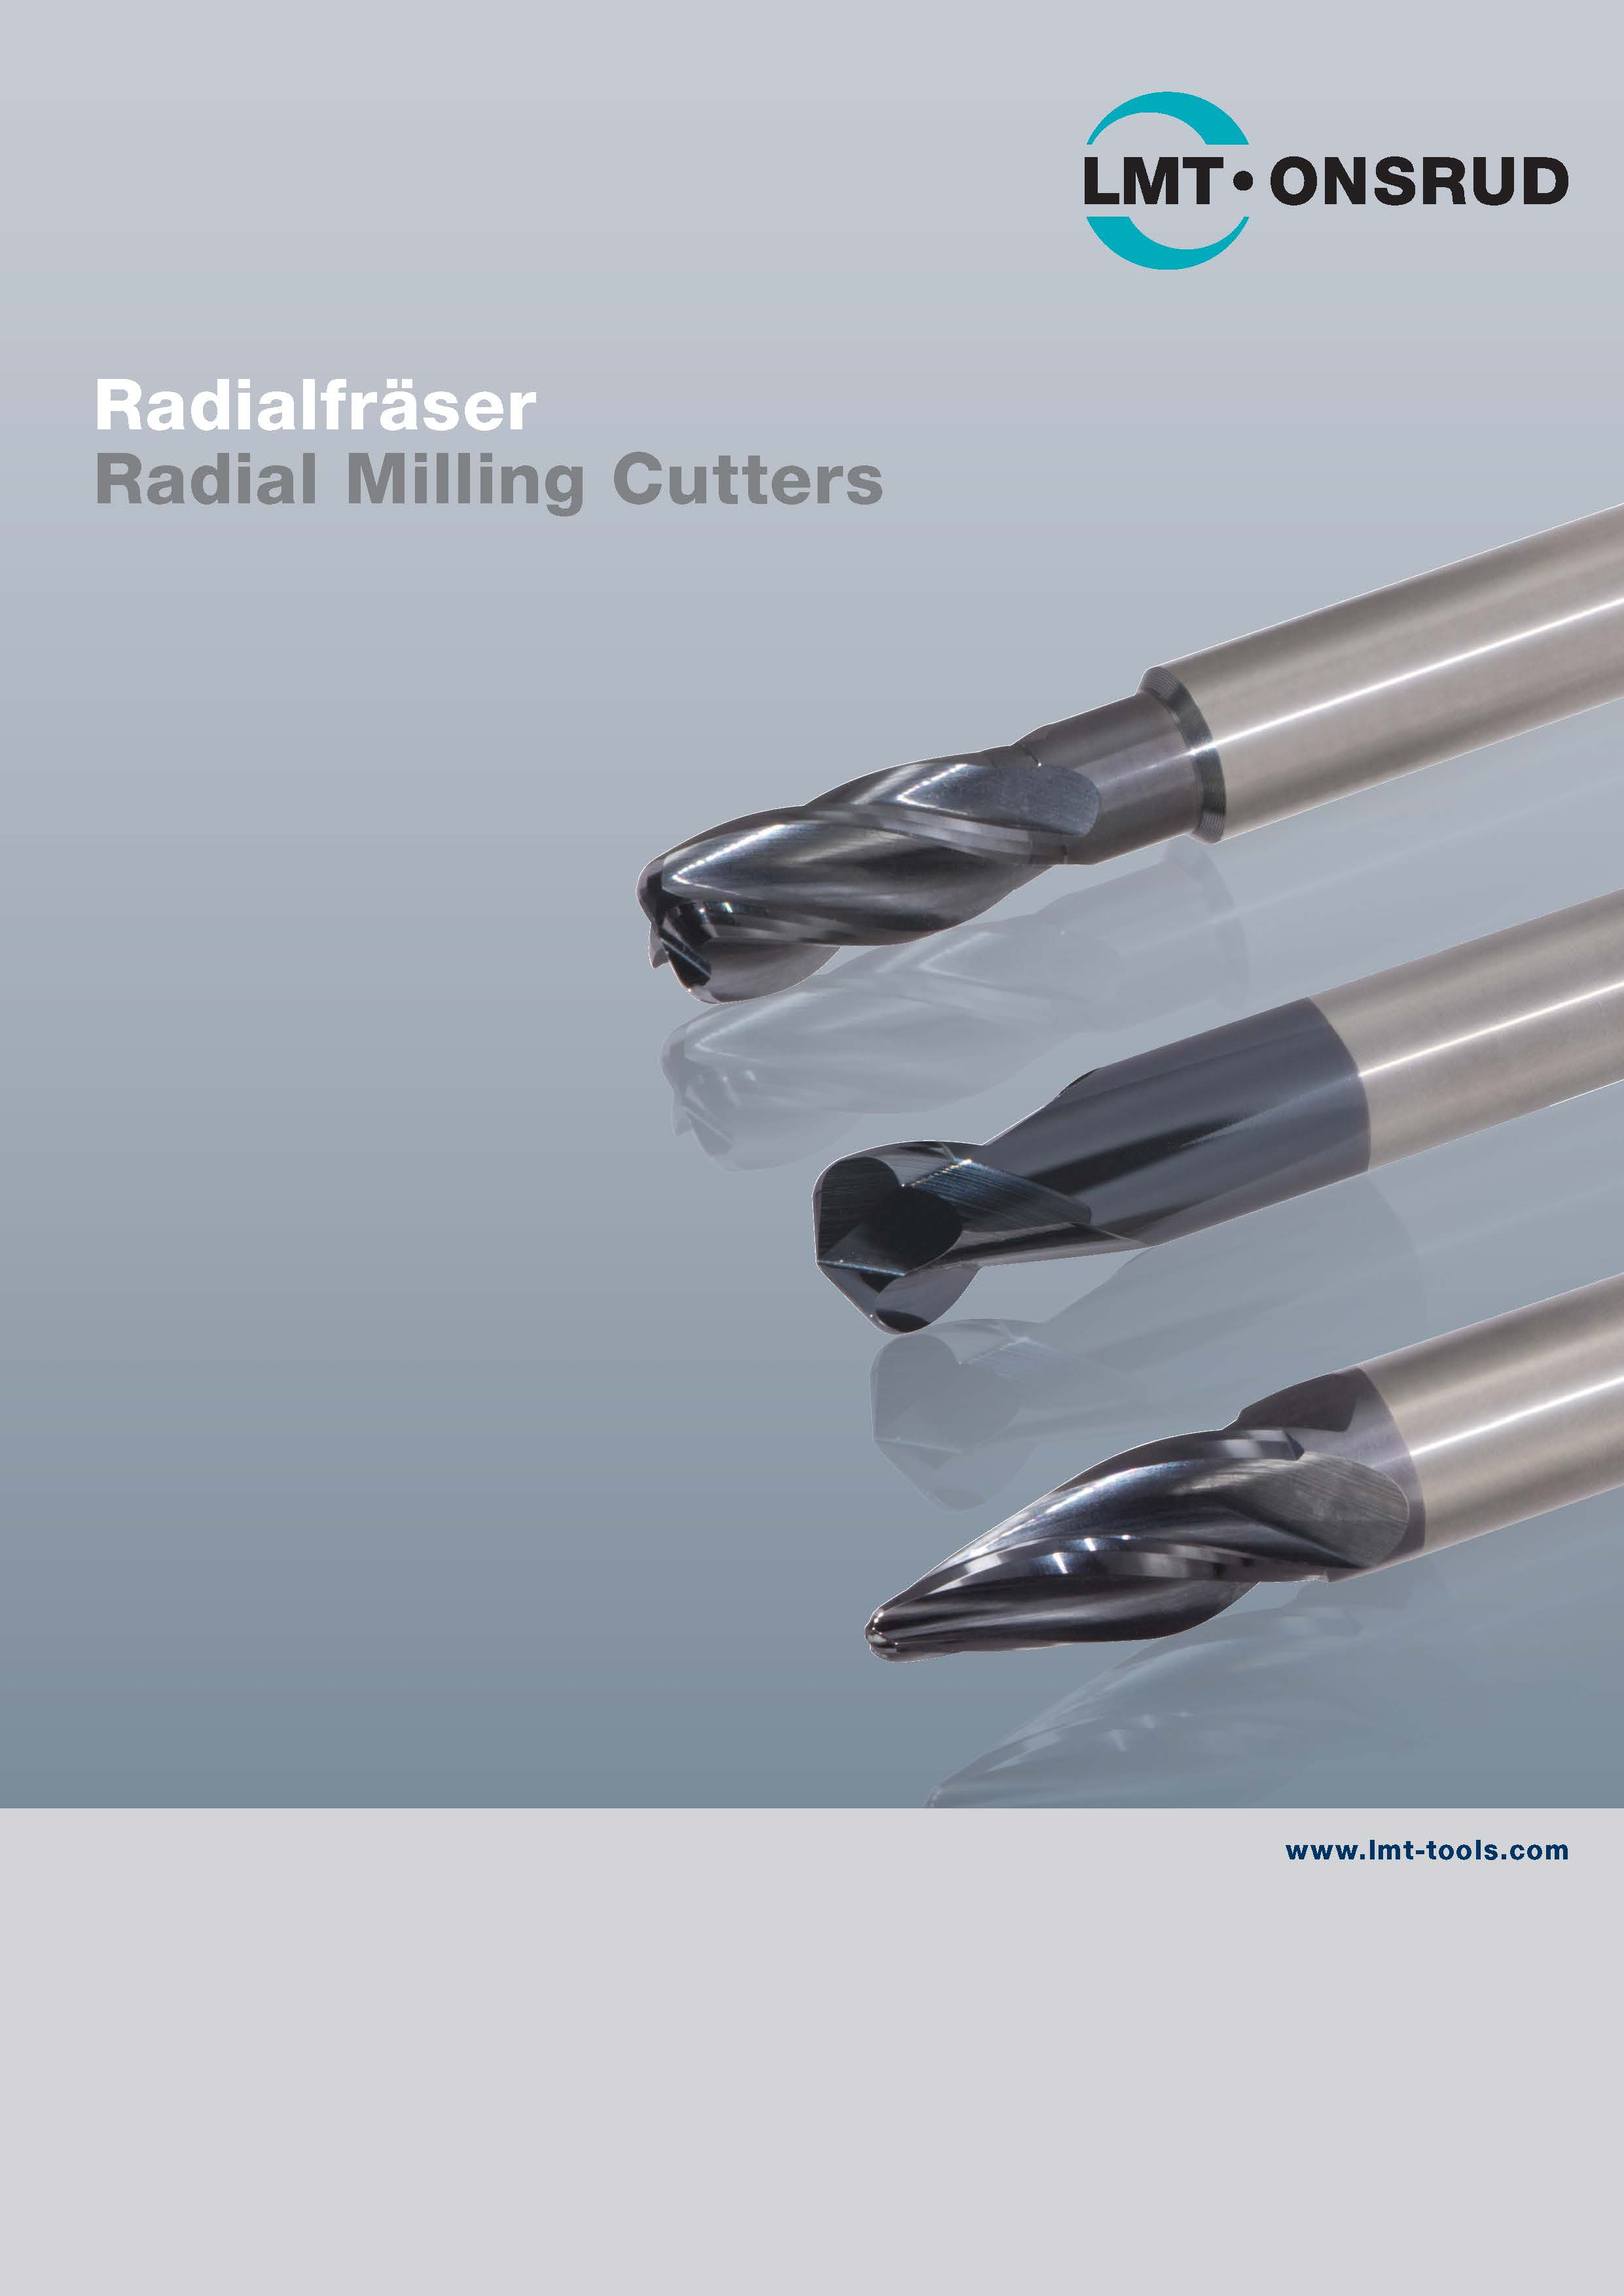 Radial Milling Cutters